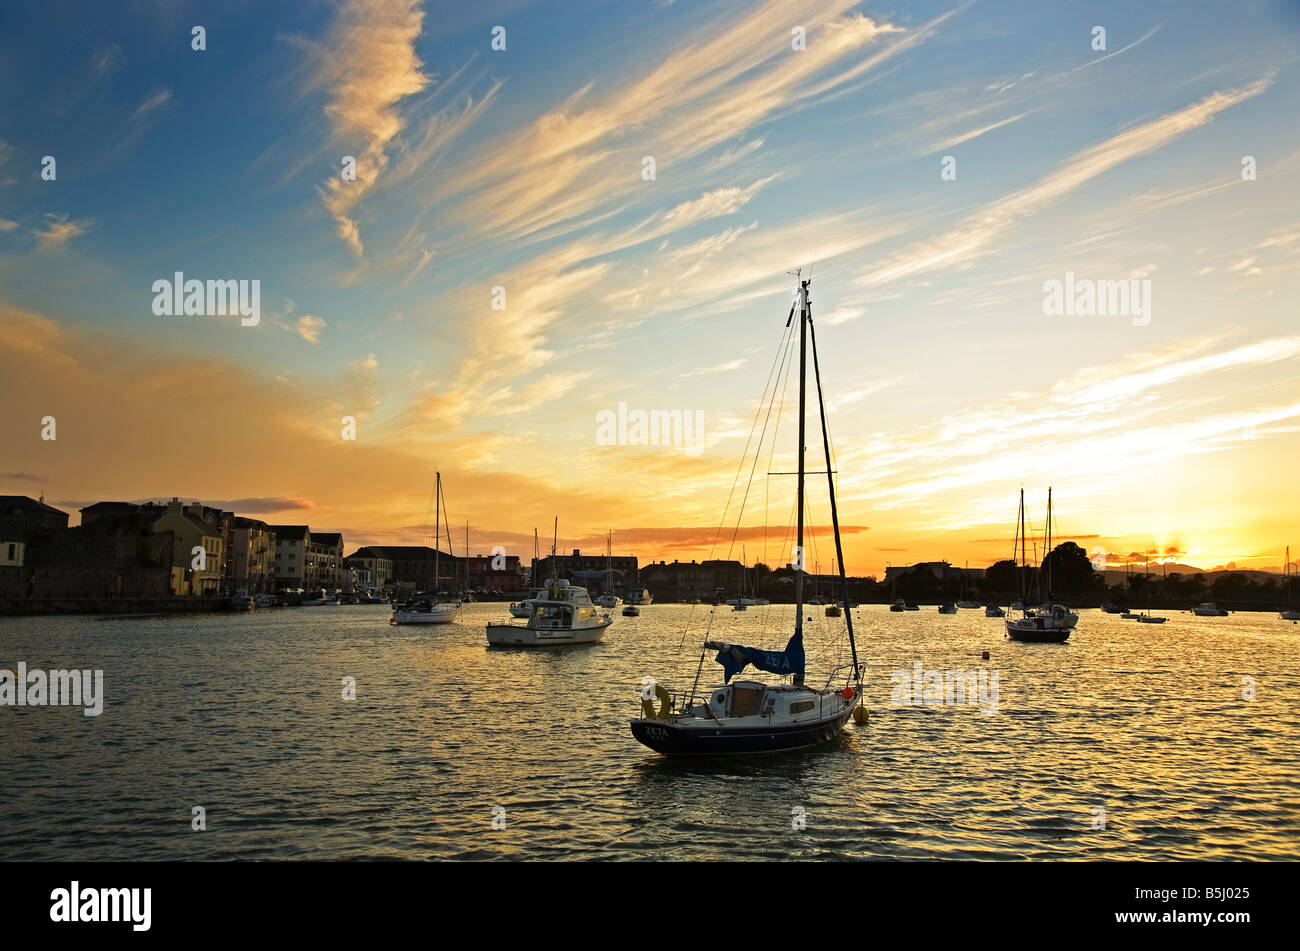 Dramatic Sunset over the Yachts in Dungarvan Harbour, The Mouth of the Colligan River, County Waterford, Ireland - Stock Image